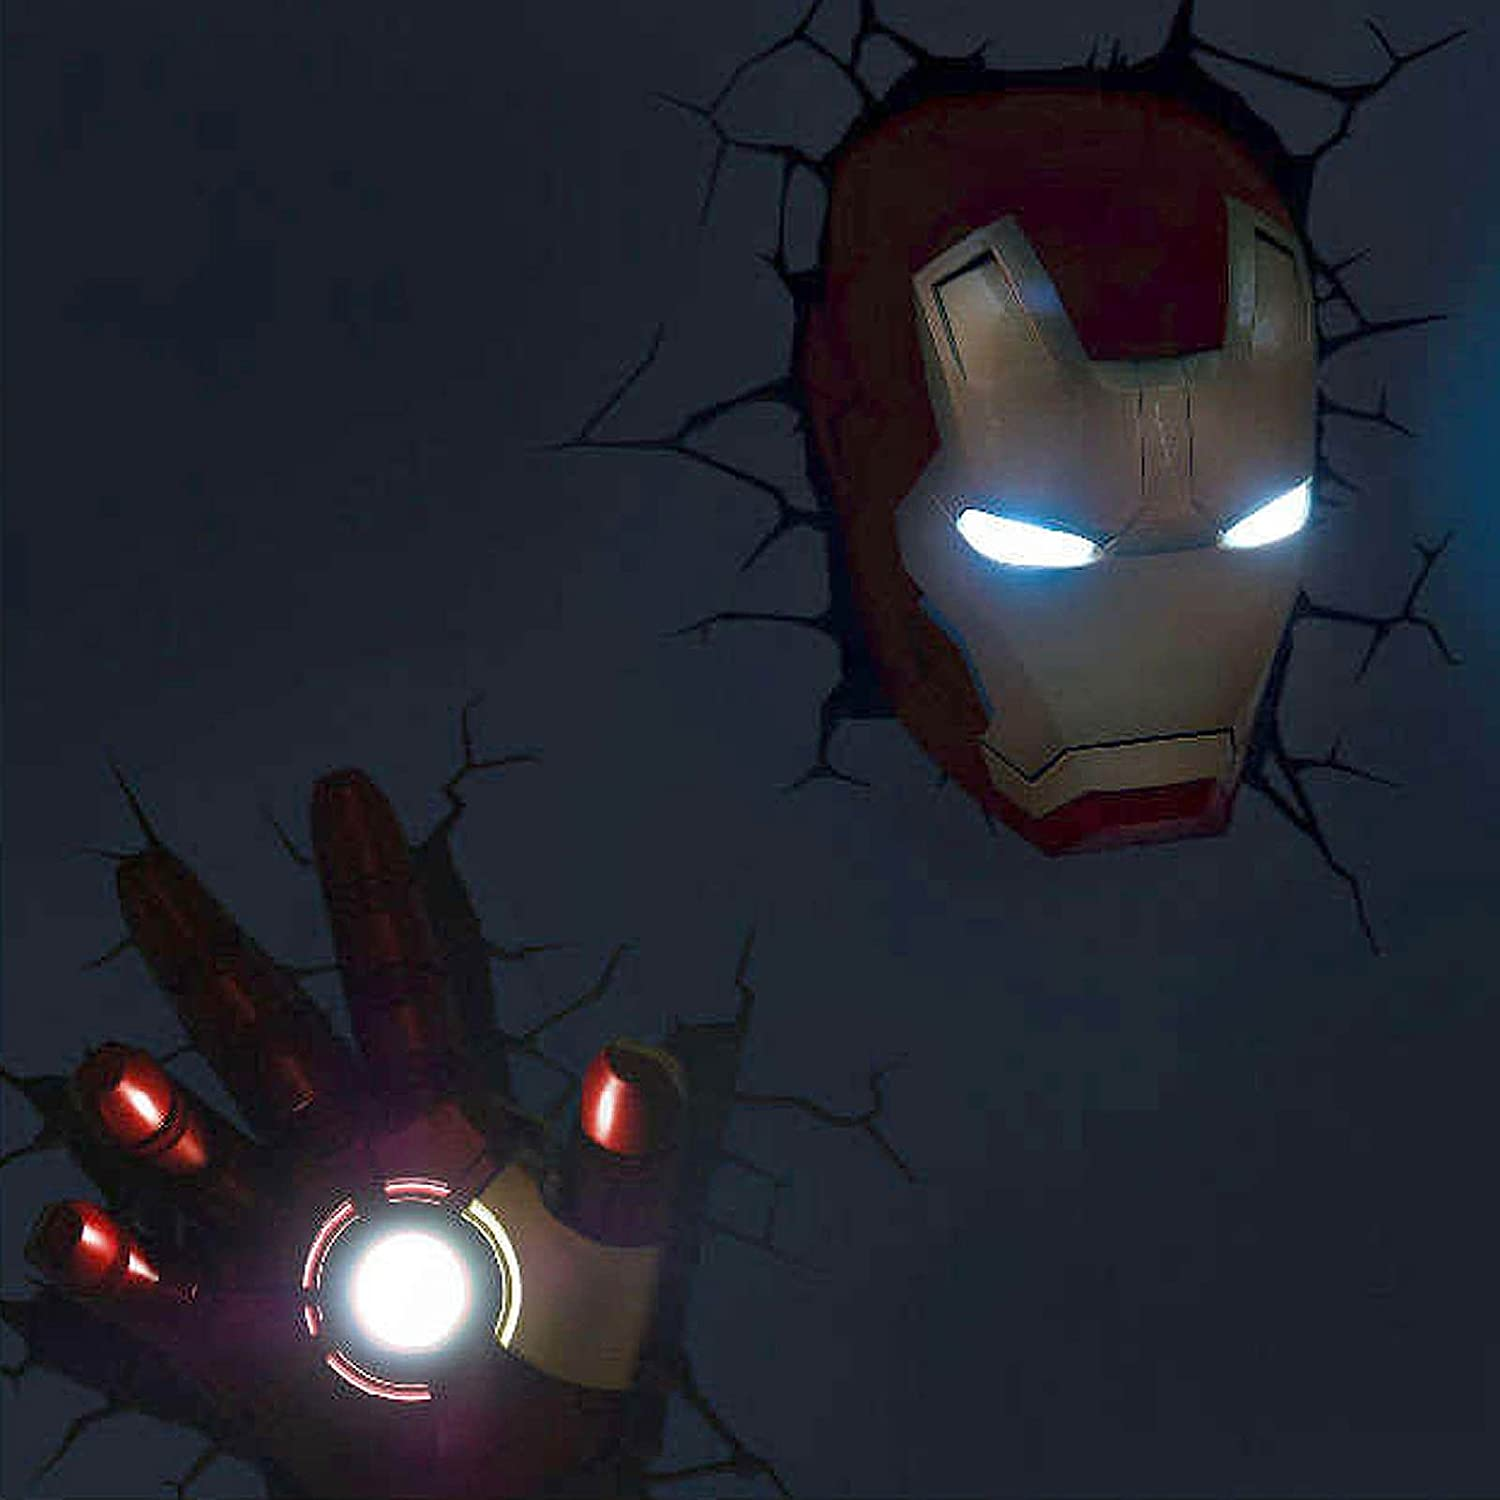 Marvel Avengers Iron Man Mask Helmet Hand 3d Fx Deco Led Wall Lights Amazon De Beleuchtung